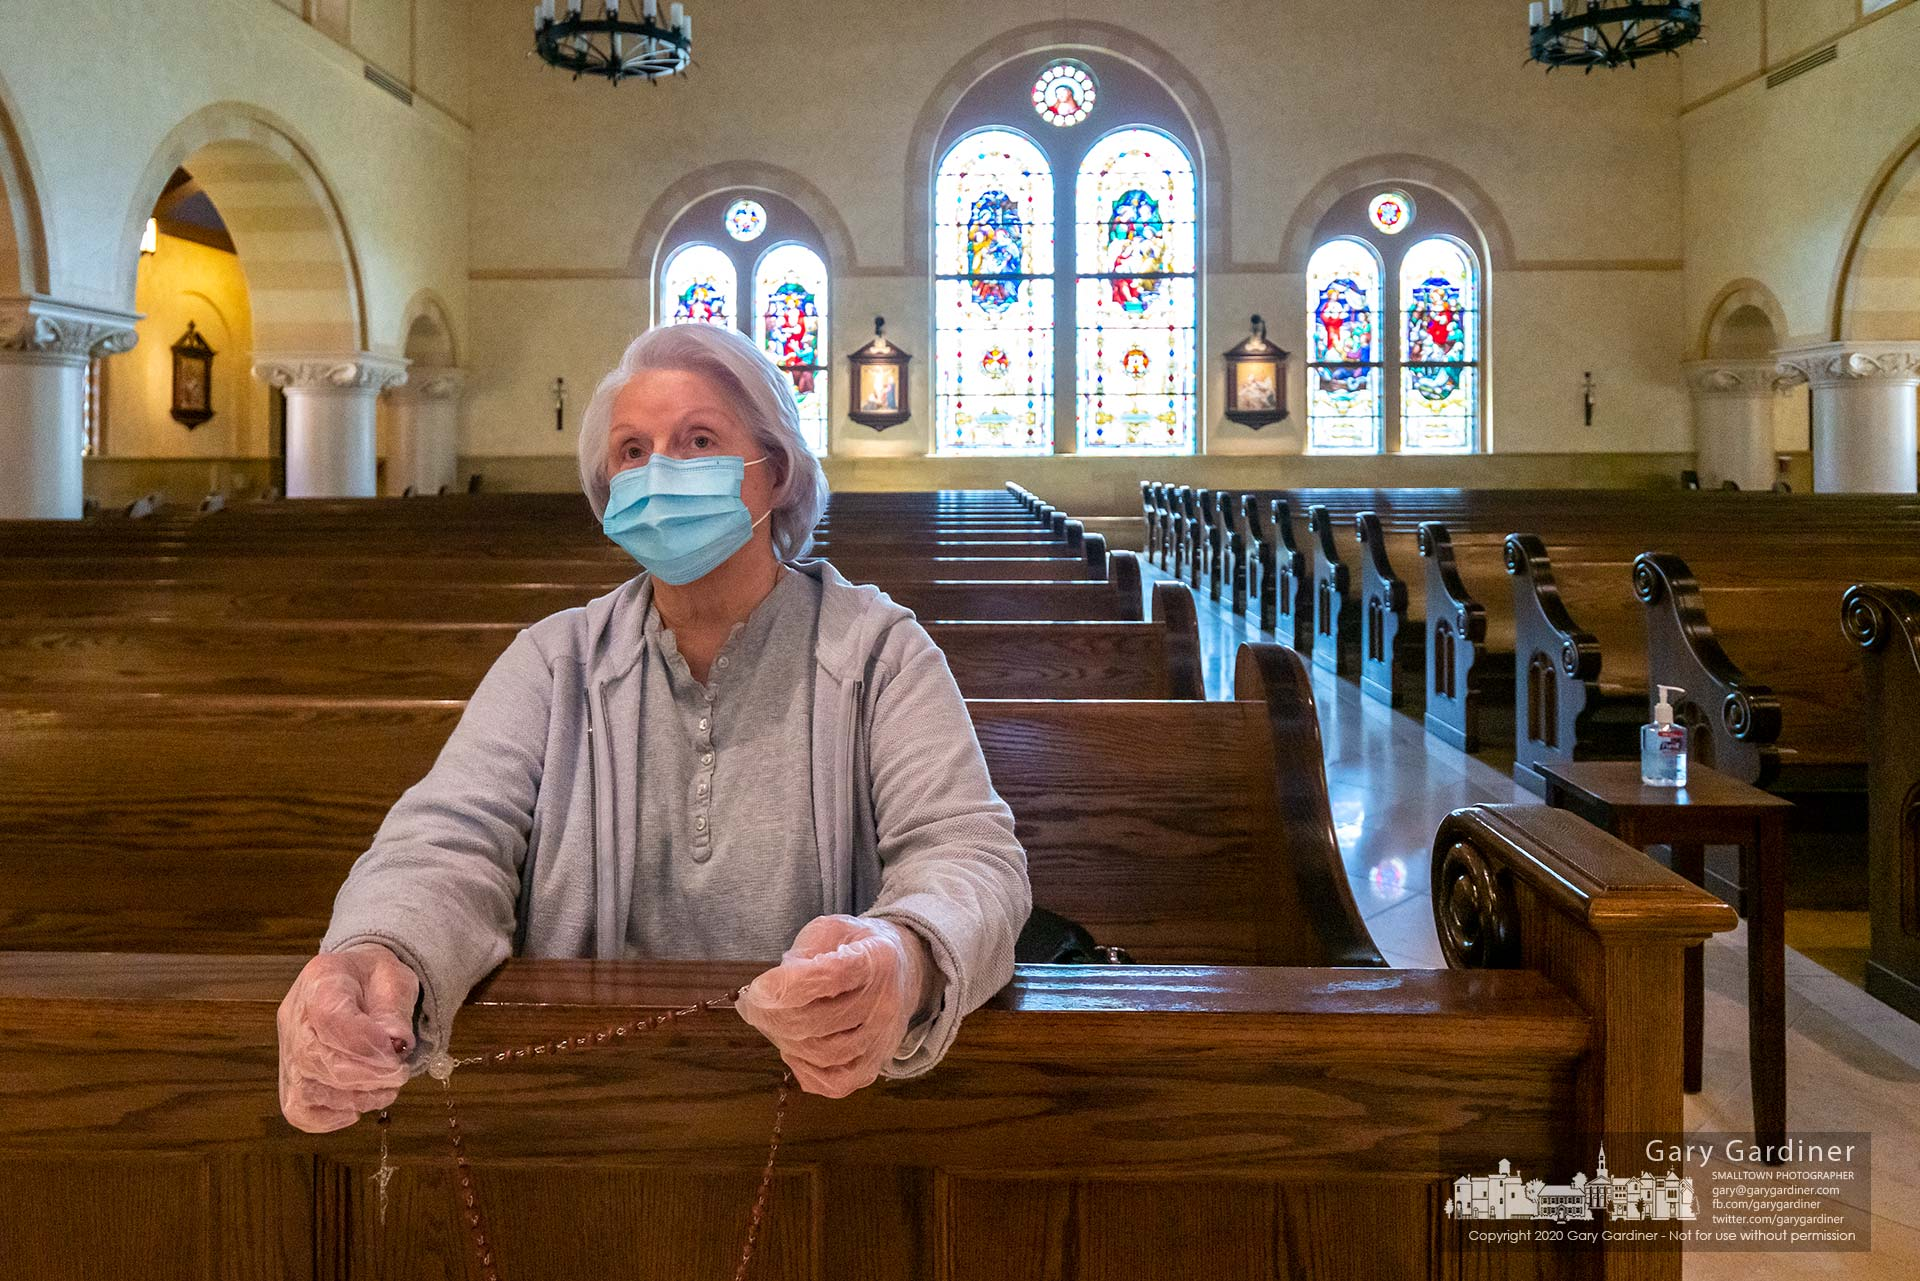 A parishioner prays while wearing a face mask and rubber gloves with hand sanitizer on a table in the aisle after St. Paul the Apostle Catholic Church opened its doors after closing them two months ago due to the coronavirus pandemic. My Final Photo for May 13, 2020.